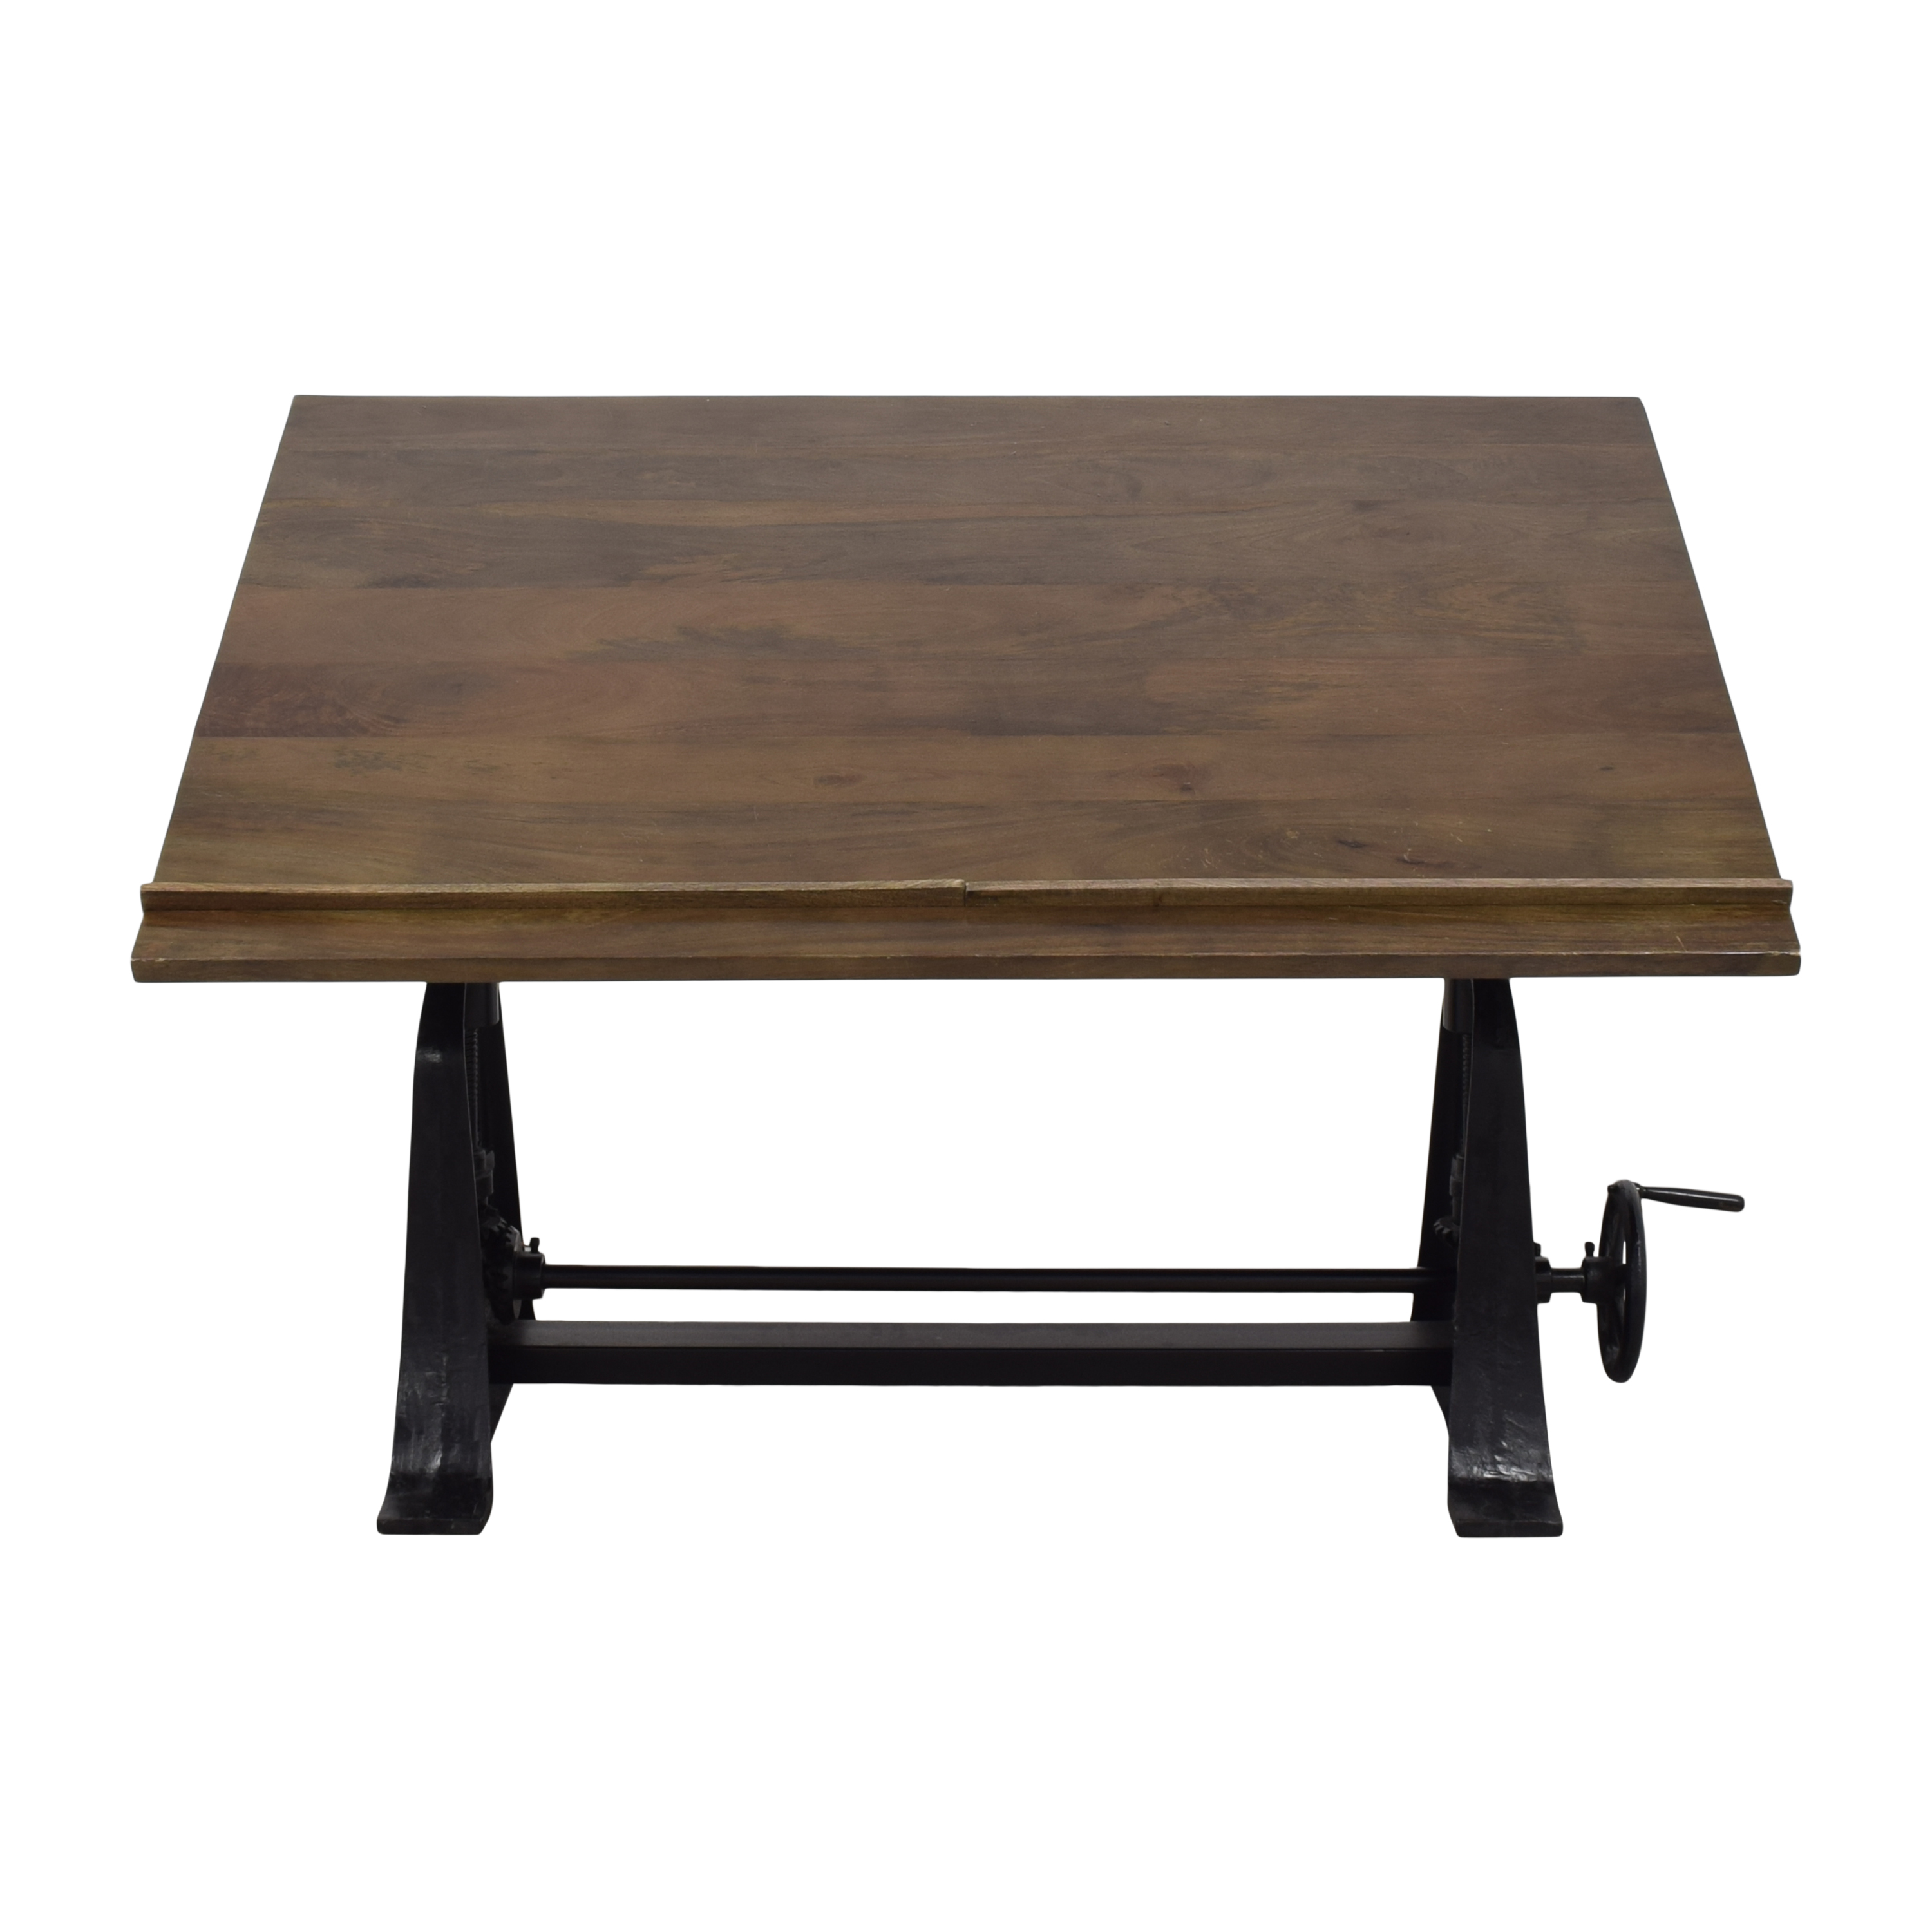 Restoration Hardware Restoration Hardware 1910 American Trestle Drafting Table coupon